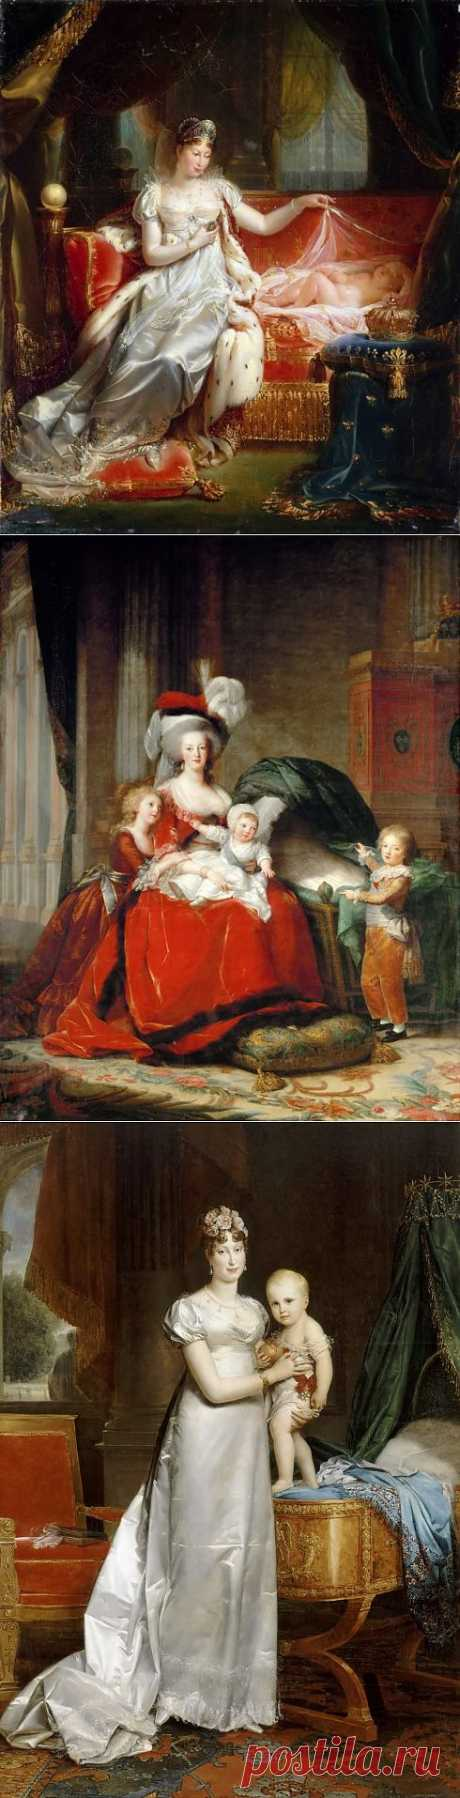 Museum of the Palace of Versailles   Family and children's portraits   Art